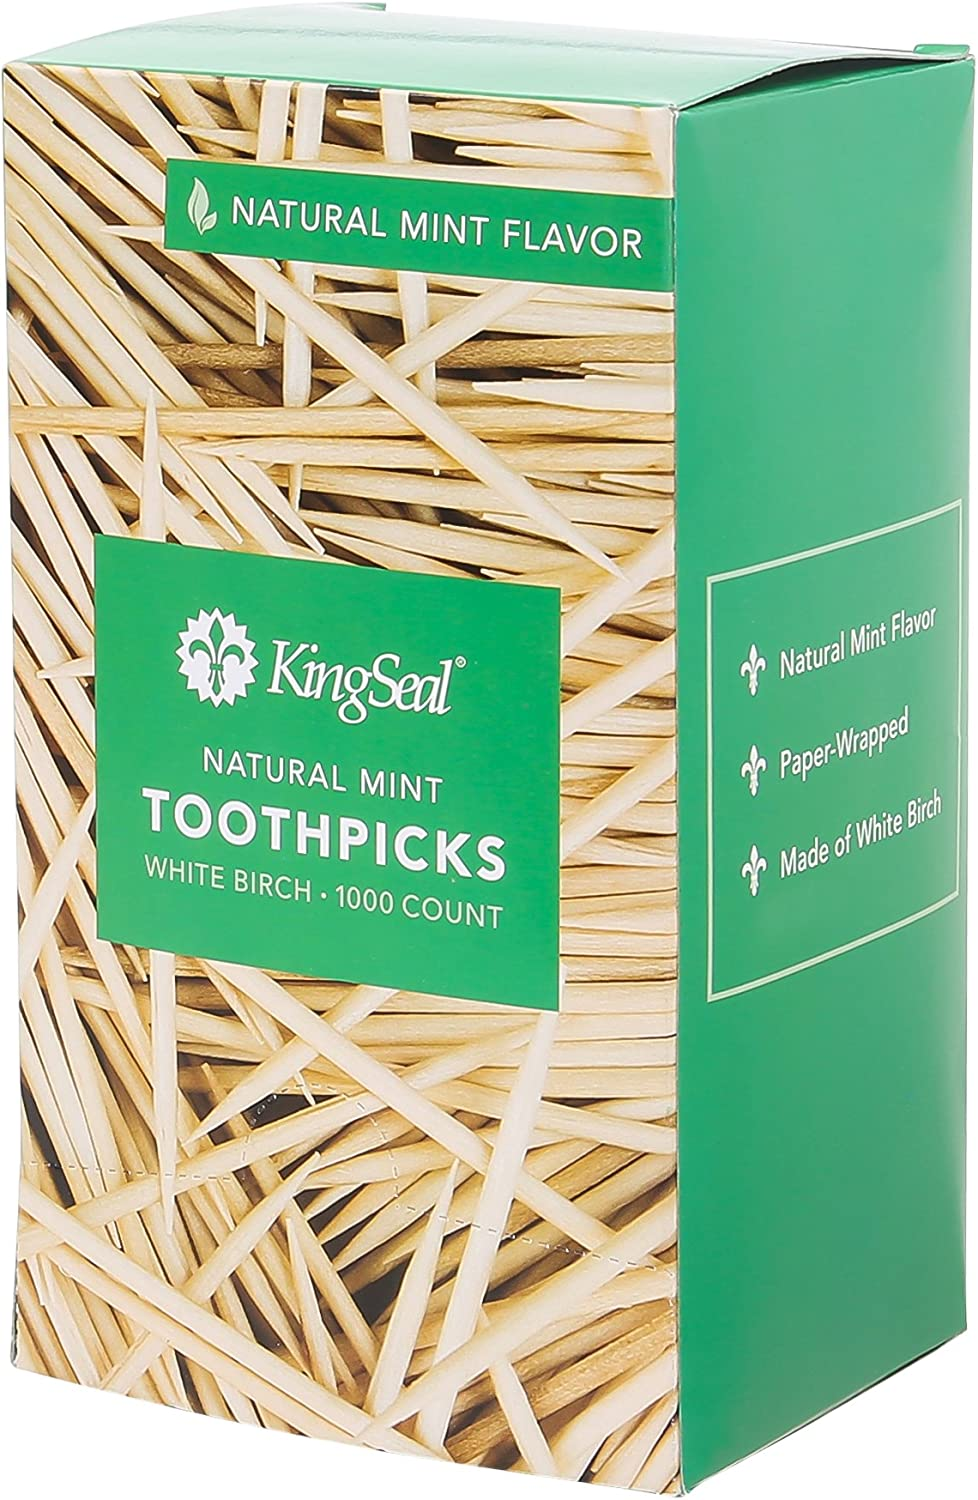 KingSeal 2.5 Today's only Inch Individually Paper Wrapped Toothpi Ranking TOP10 Flavor Mint